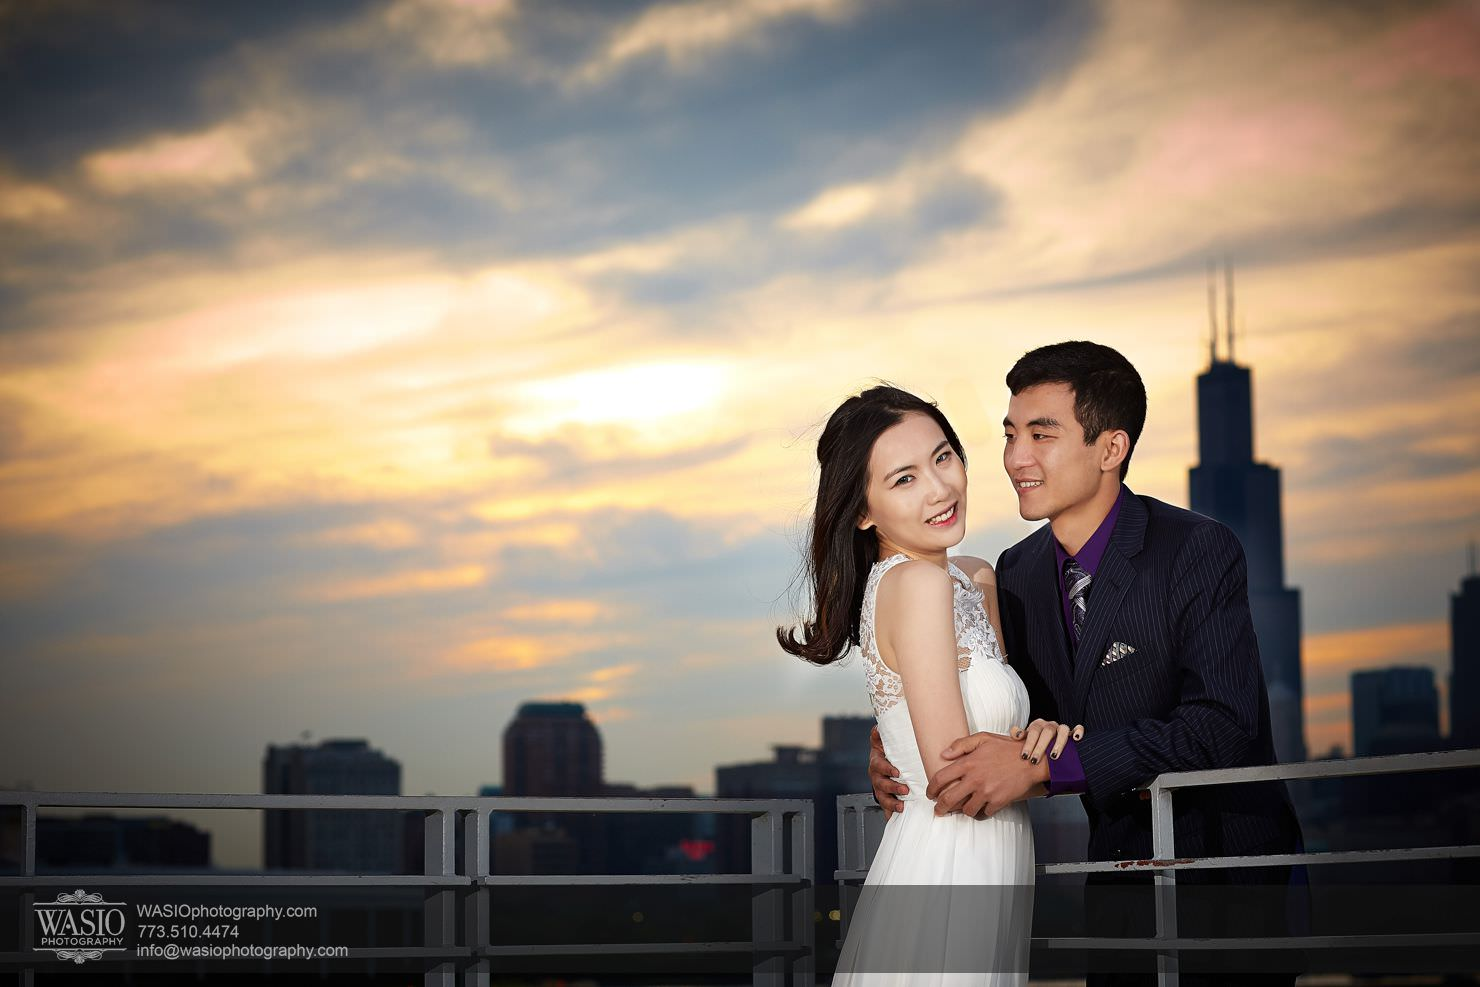 chicago-sunset-engagement-session-downtown-destination-001027 Chicago Sunset engagement - Yulin & Mika